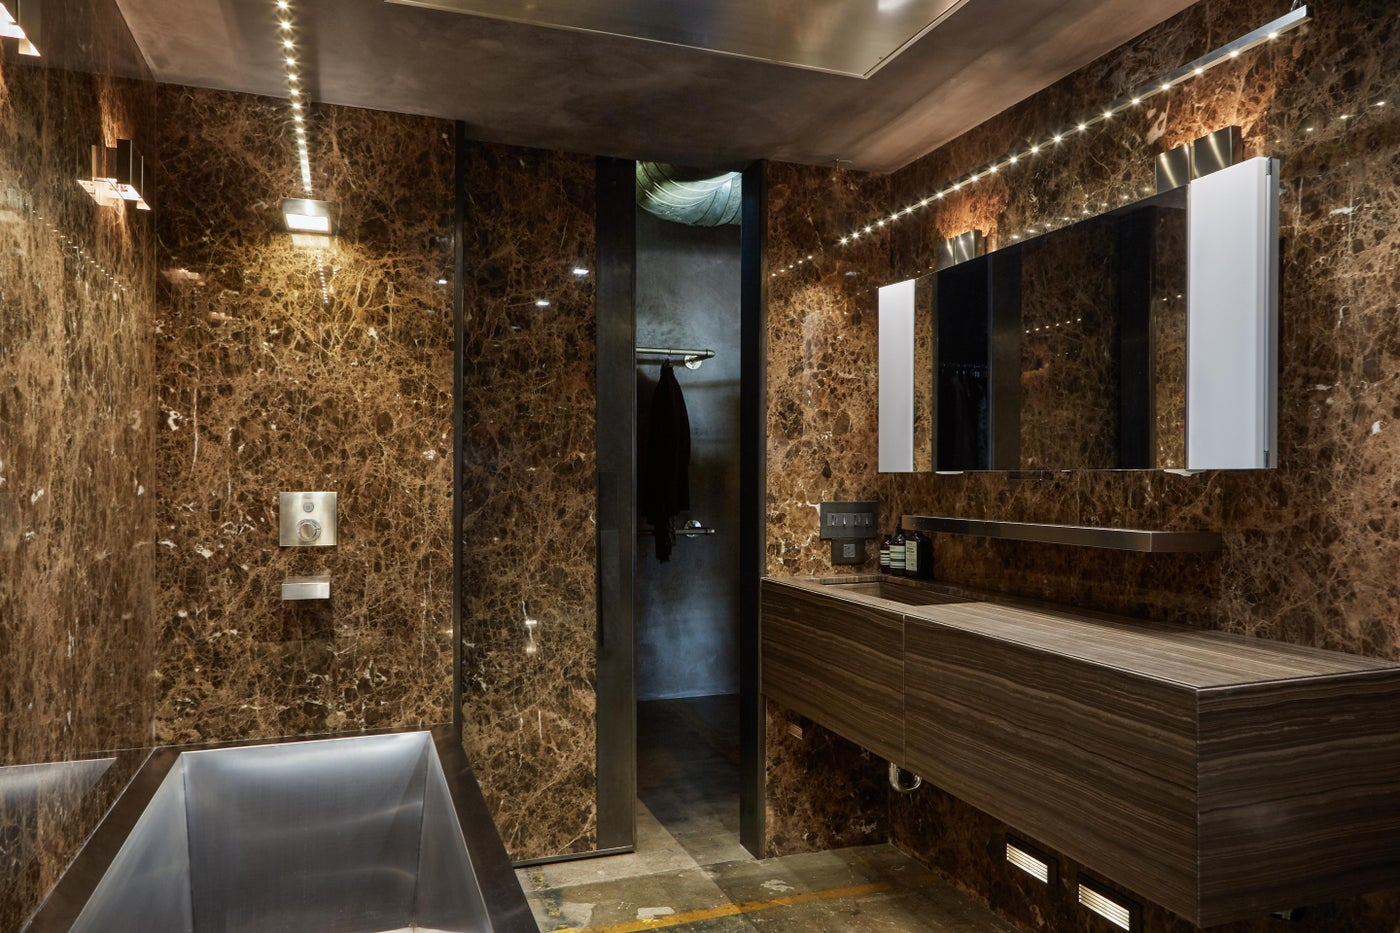 Marble walls, stainless soaking tub and floating vanity